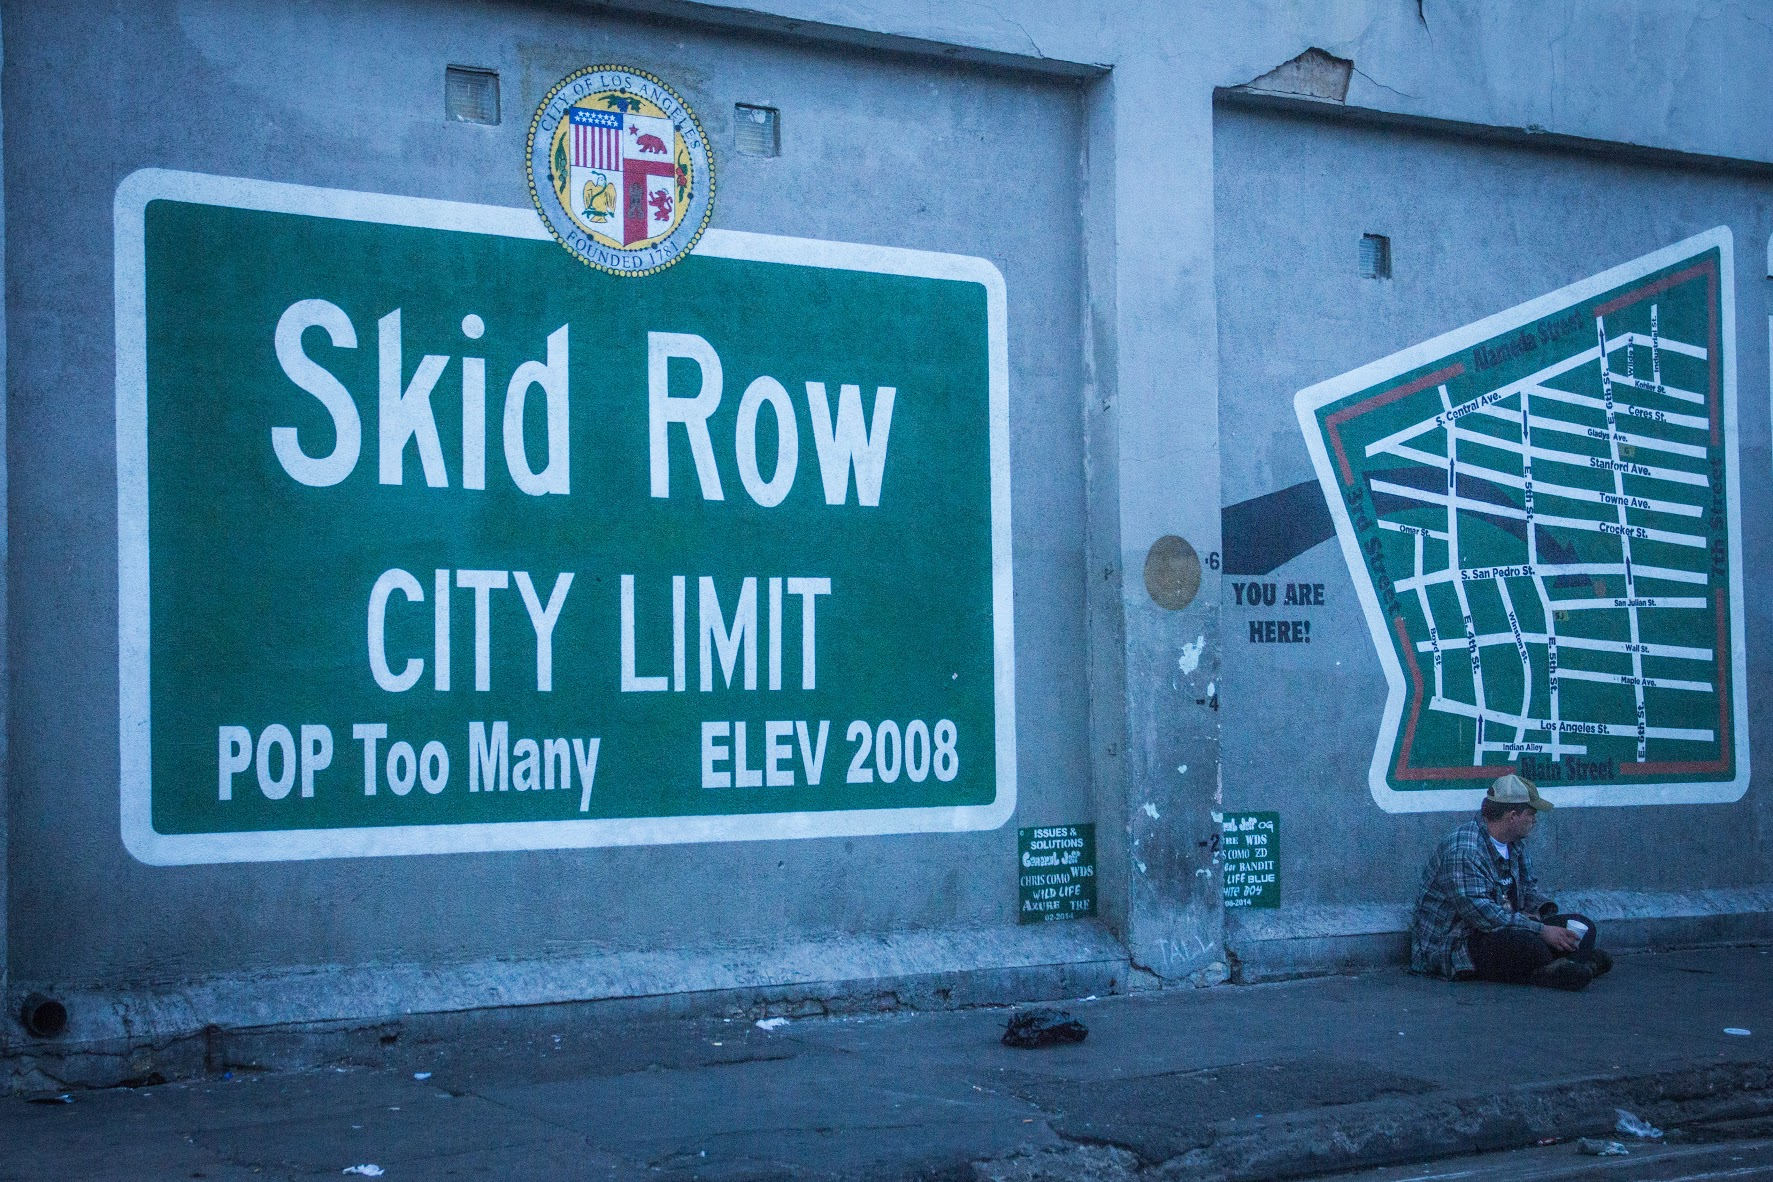 Out of mind but in plain sight: Homelessness in Los Angeles | Daily ...